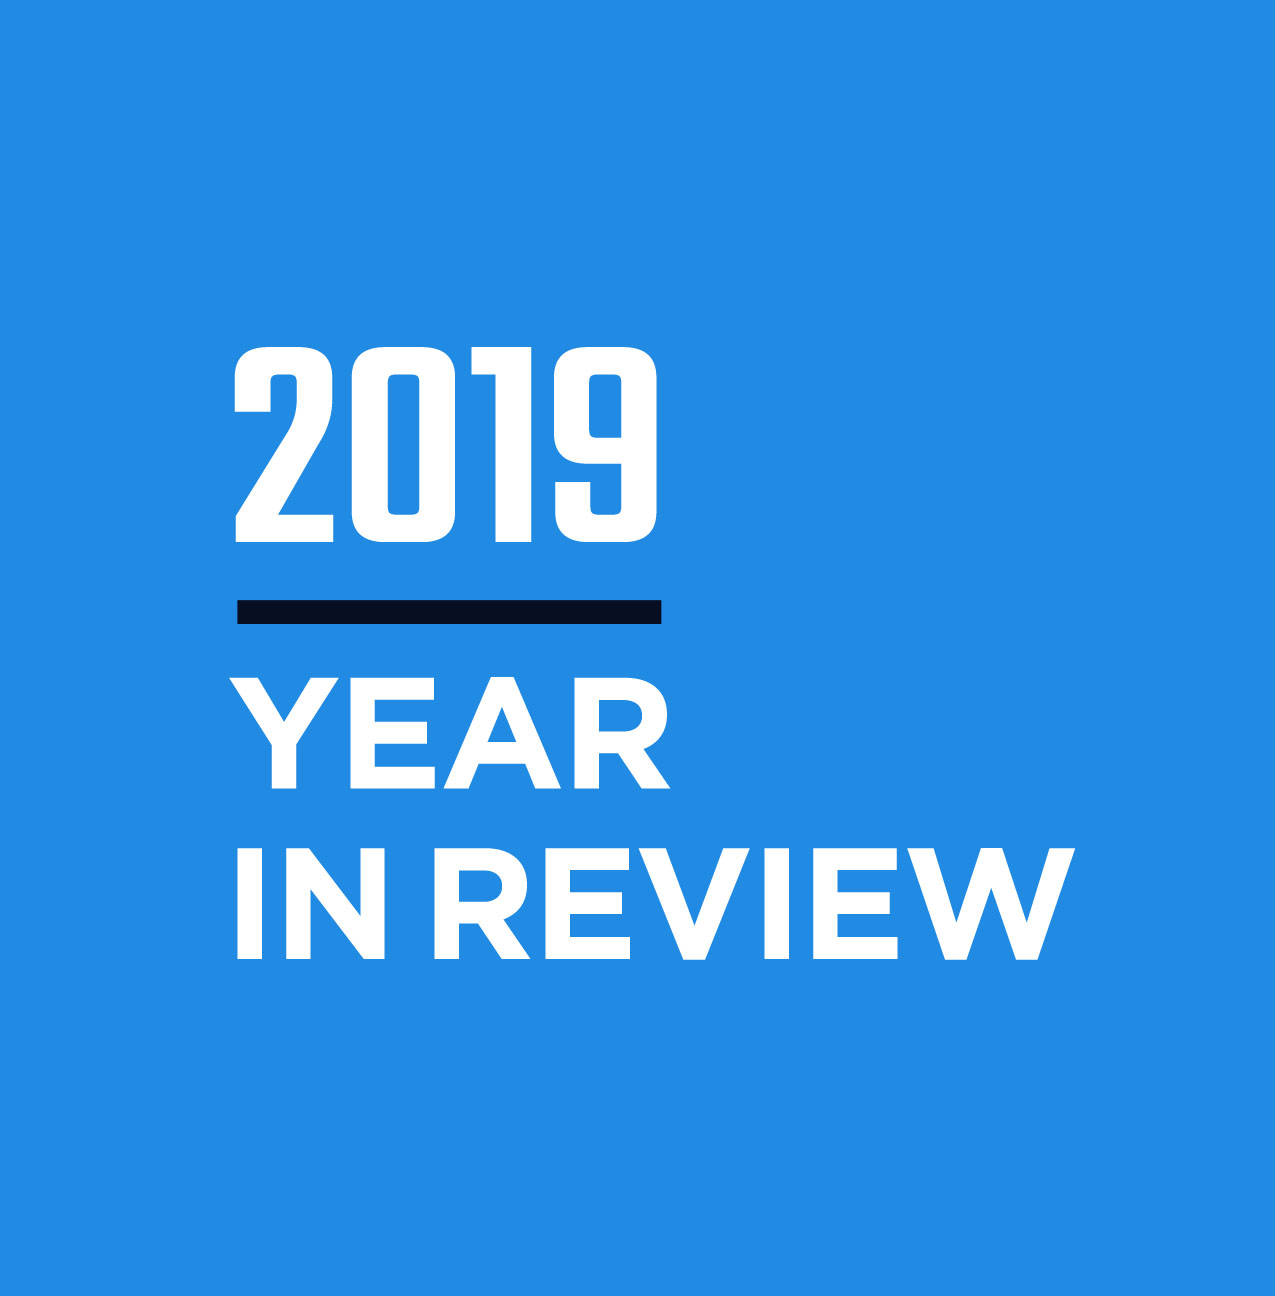 2019 Year In Review